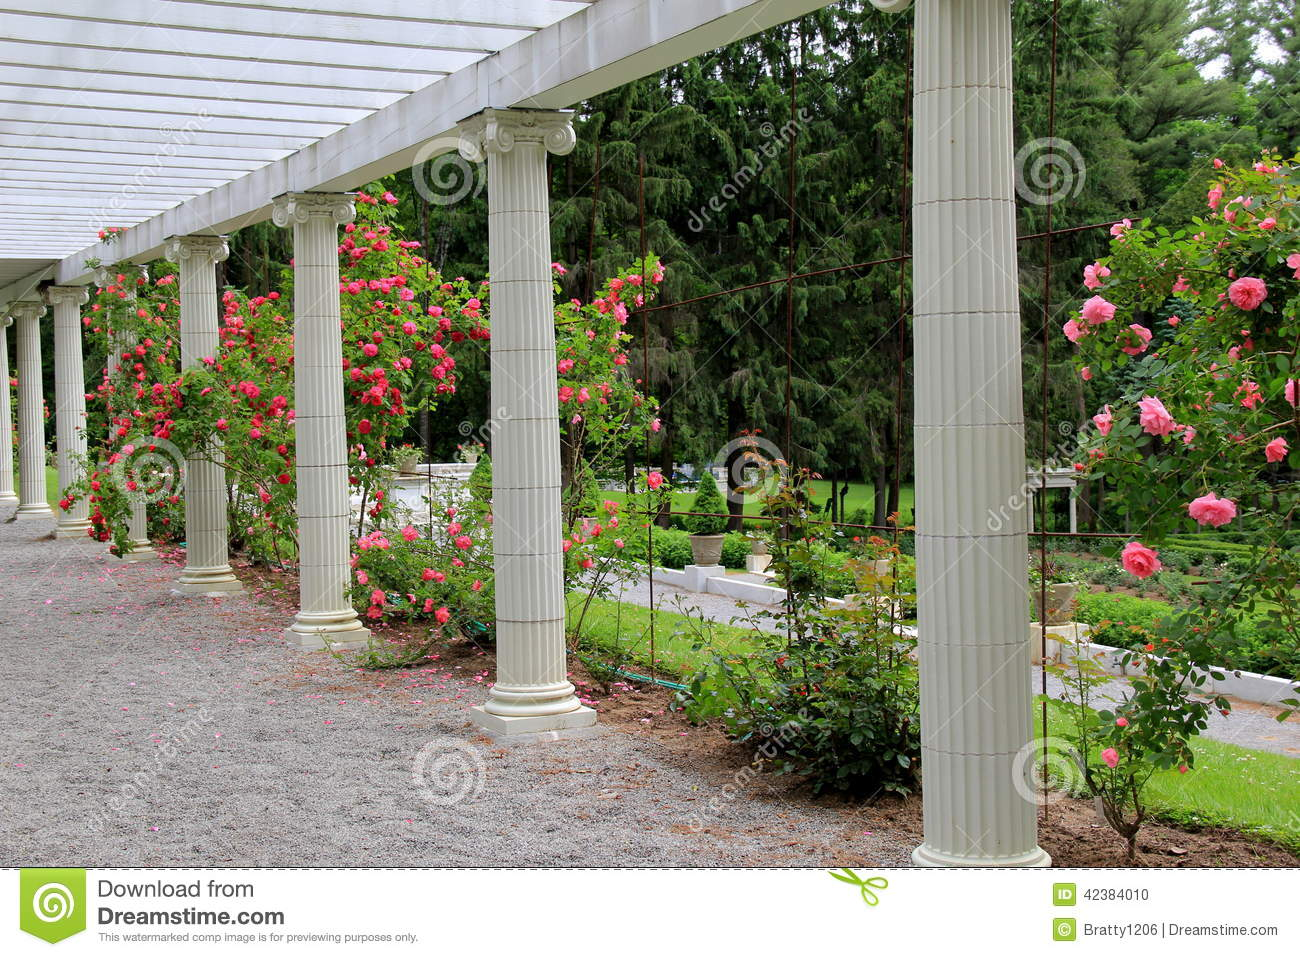 Rose Garden And Arbor With Stone PathwayYaddo GardensSaratoga